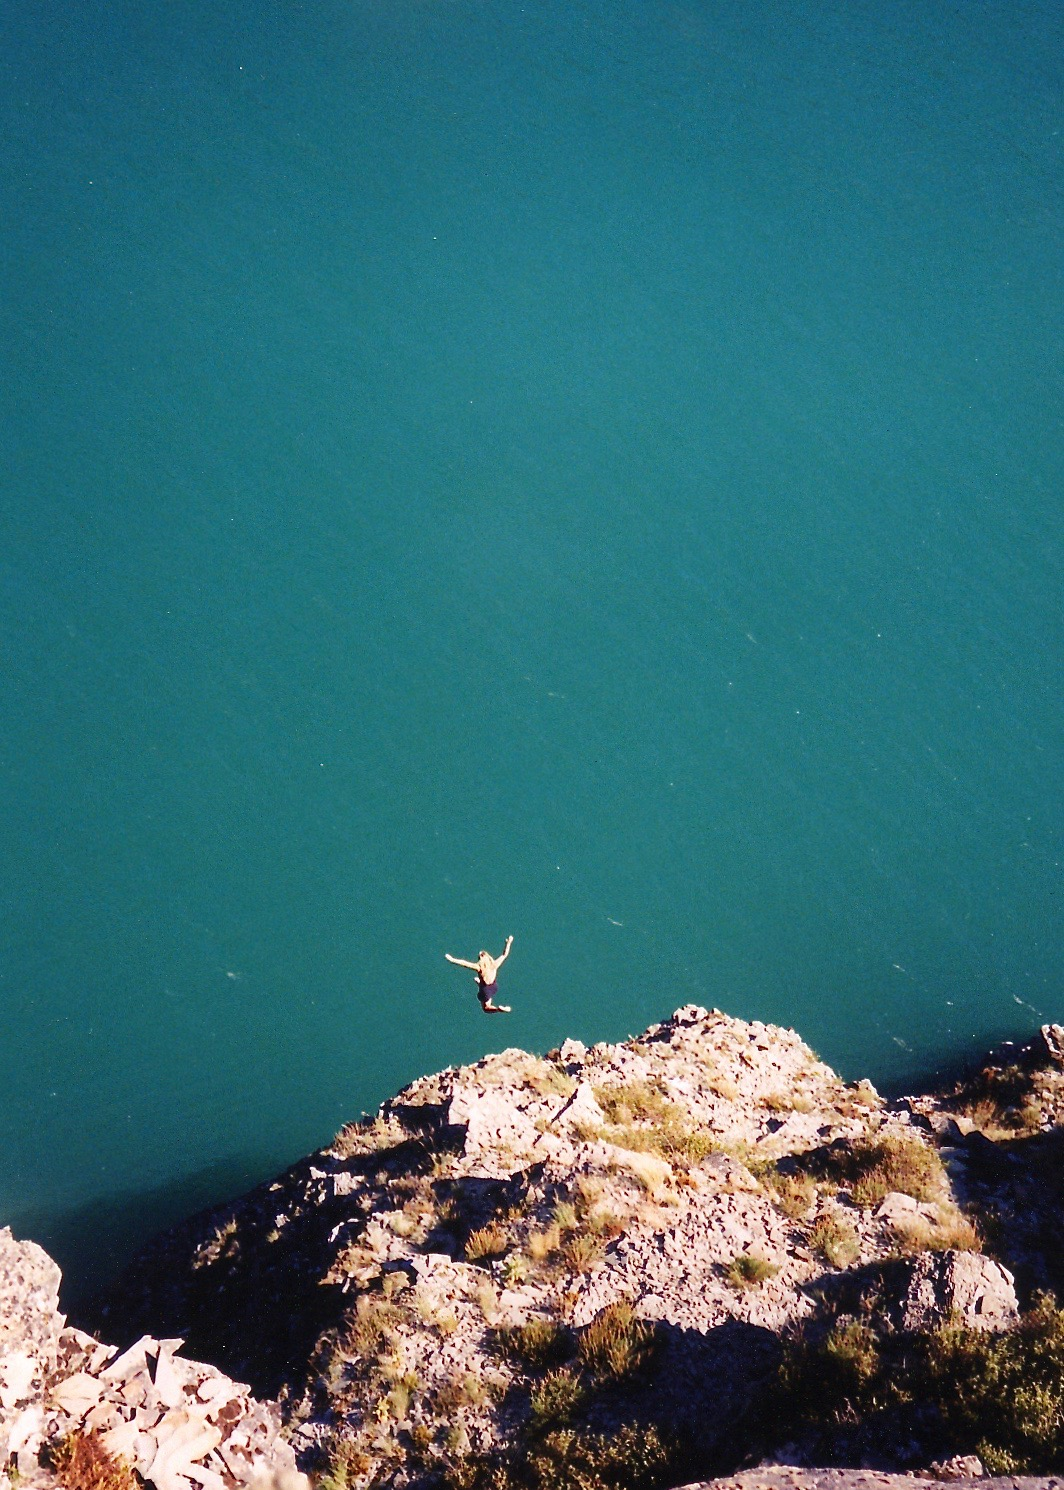 08-1998 - Erin May - Cliff jumping, Glacier National Park, MT